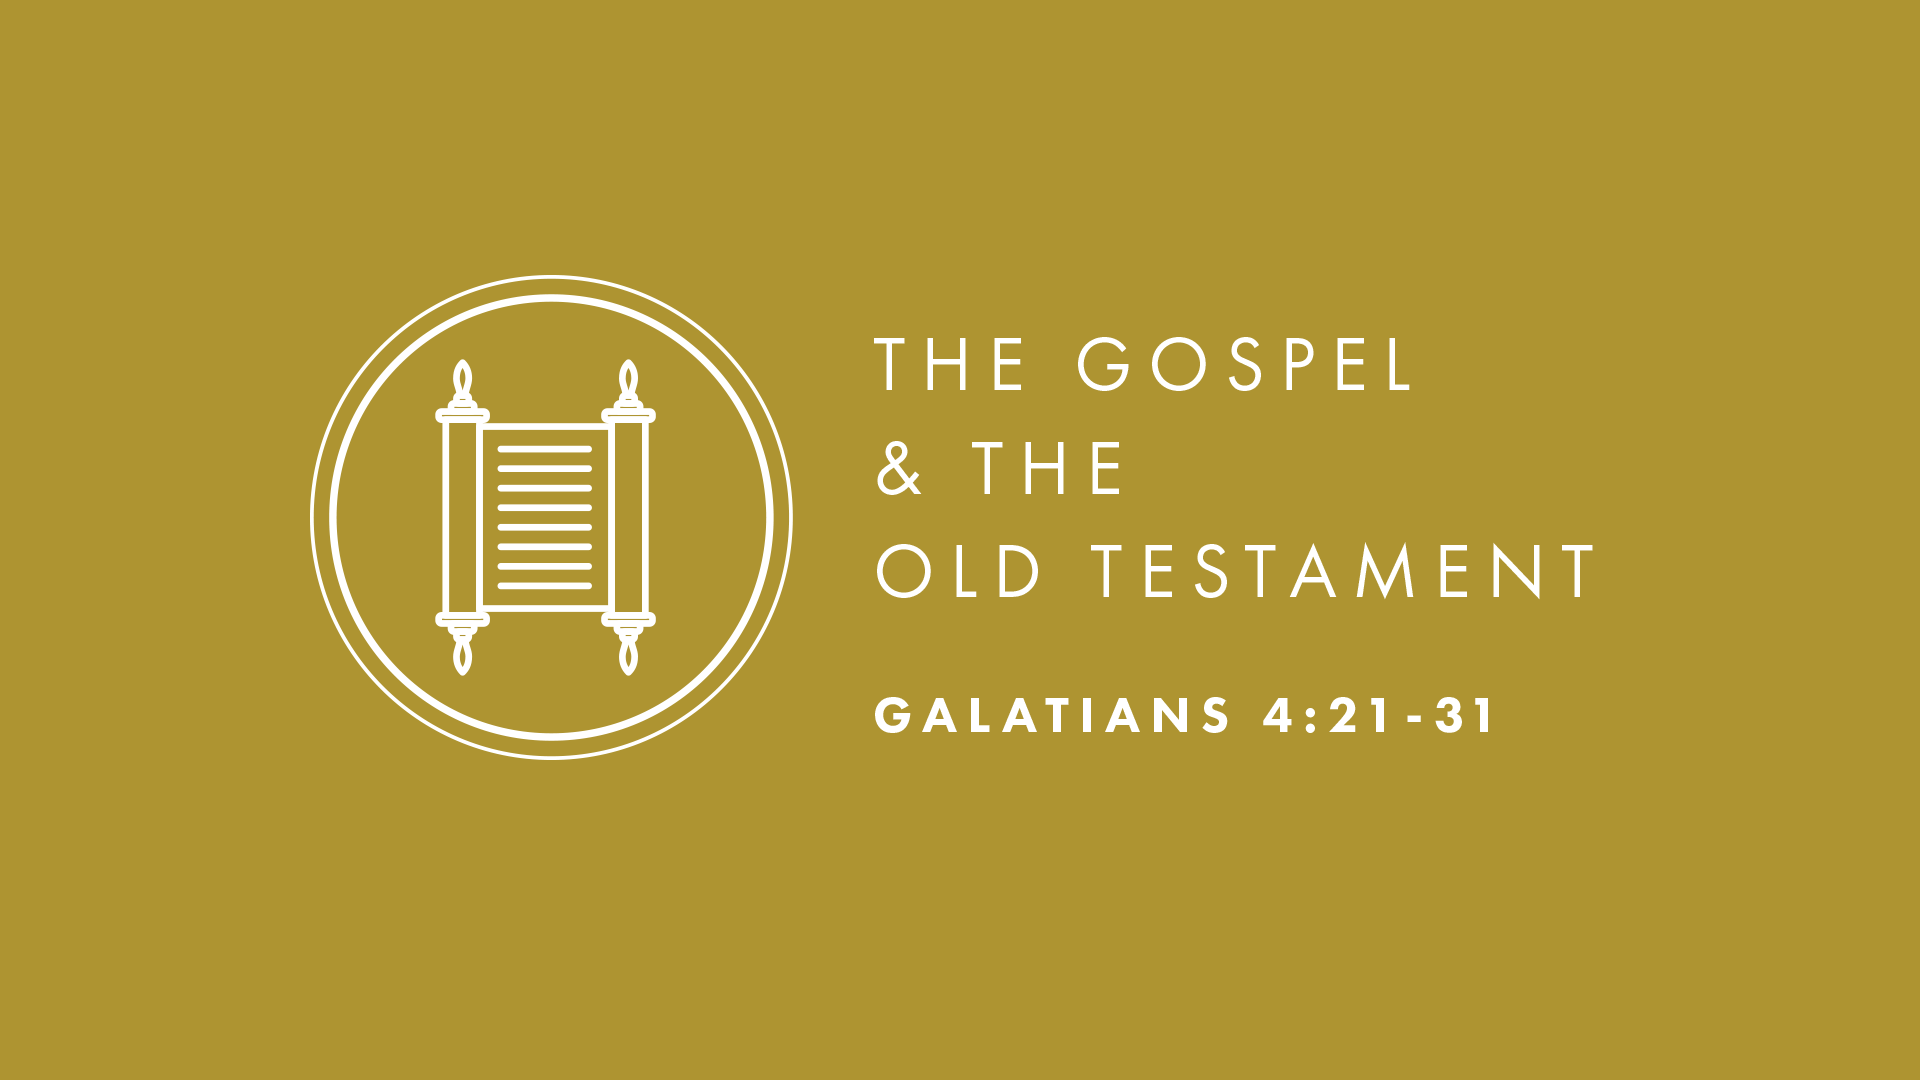 The Gospel and the Old Testament